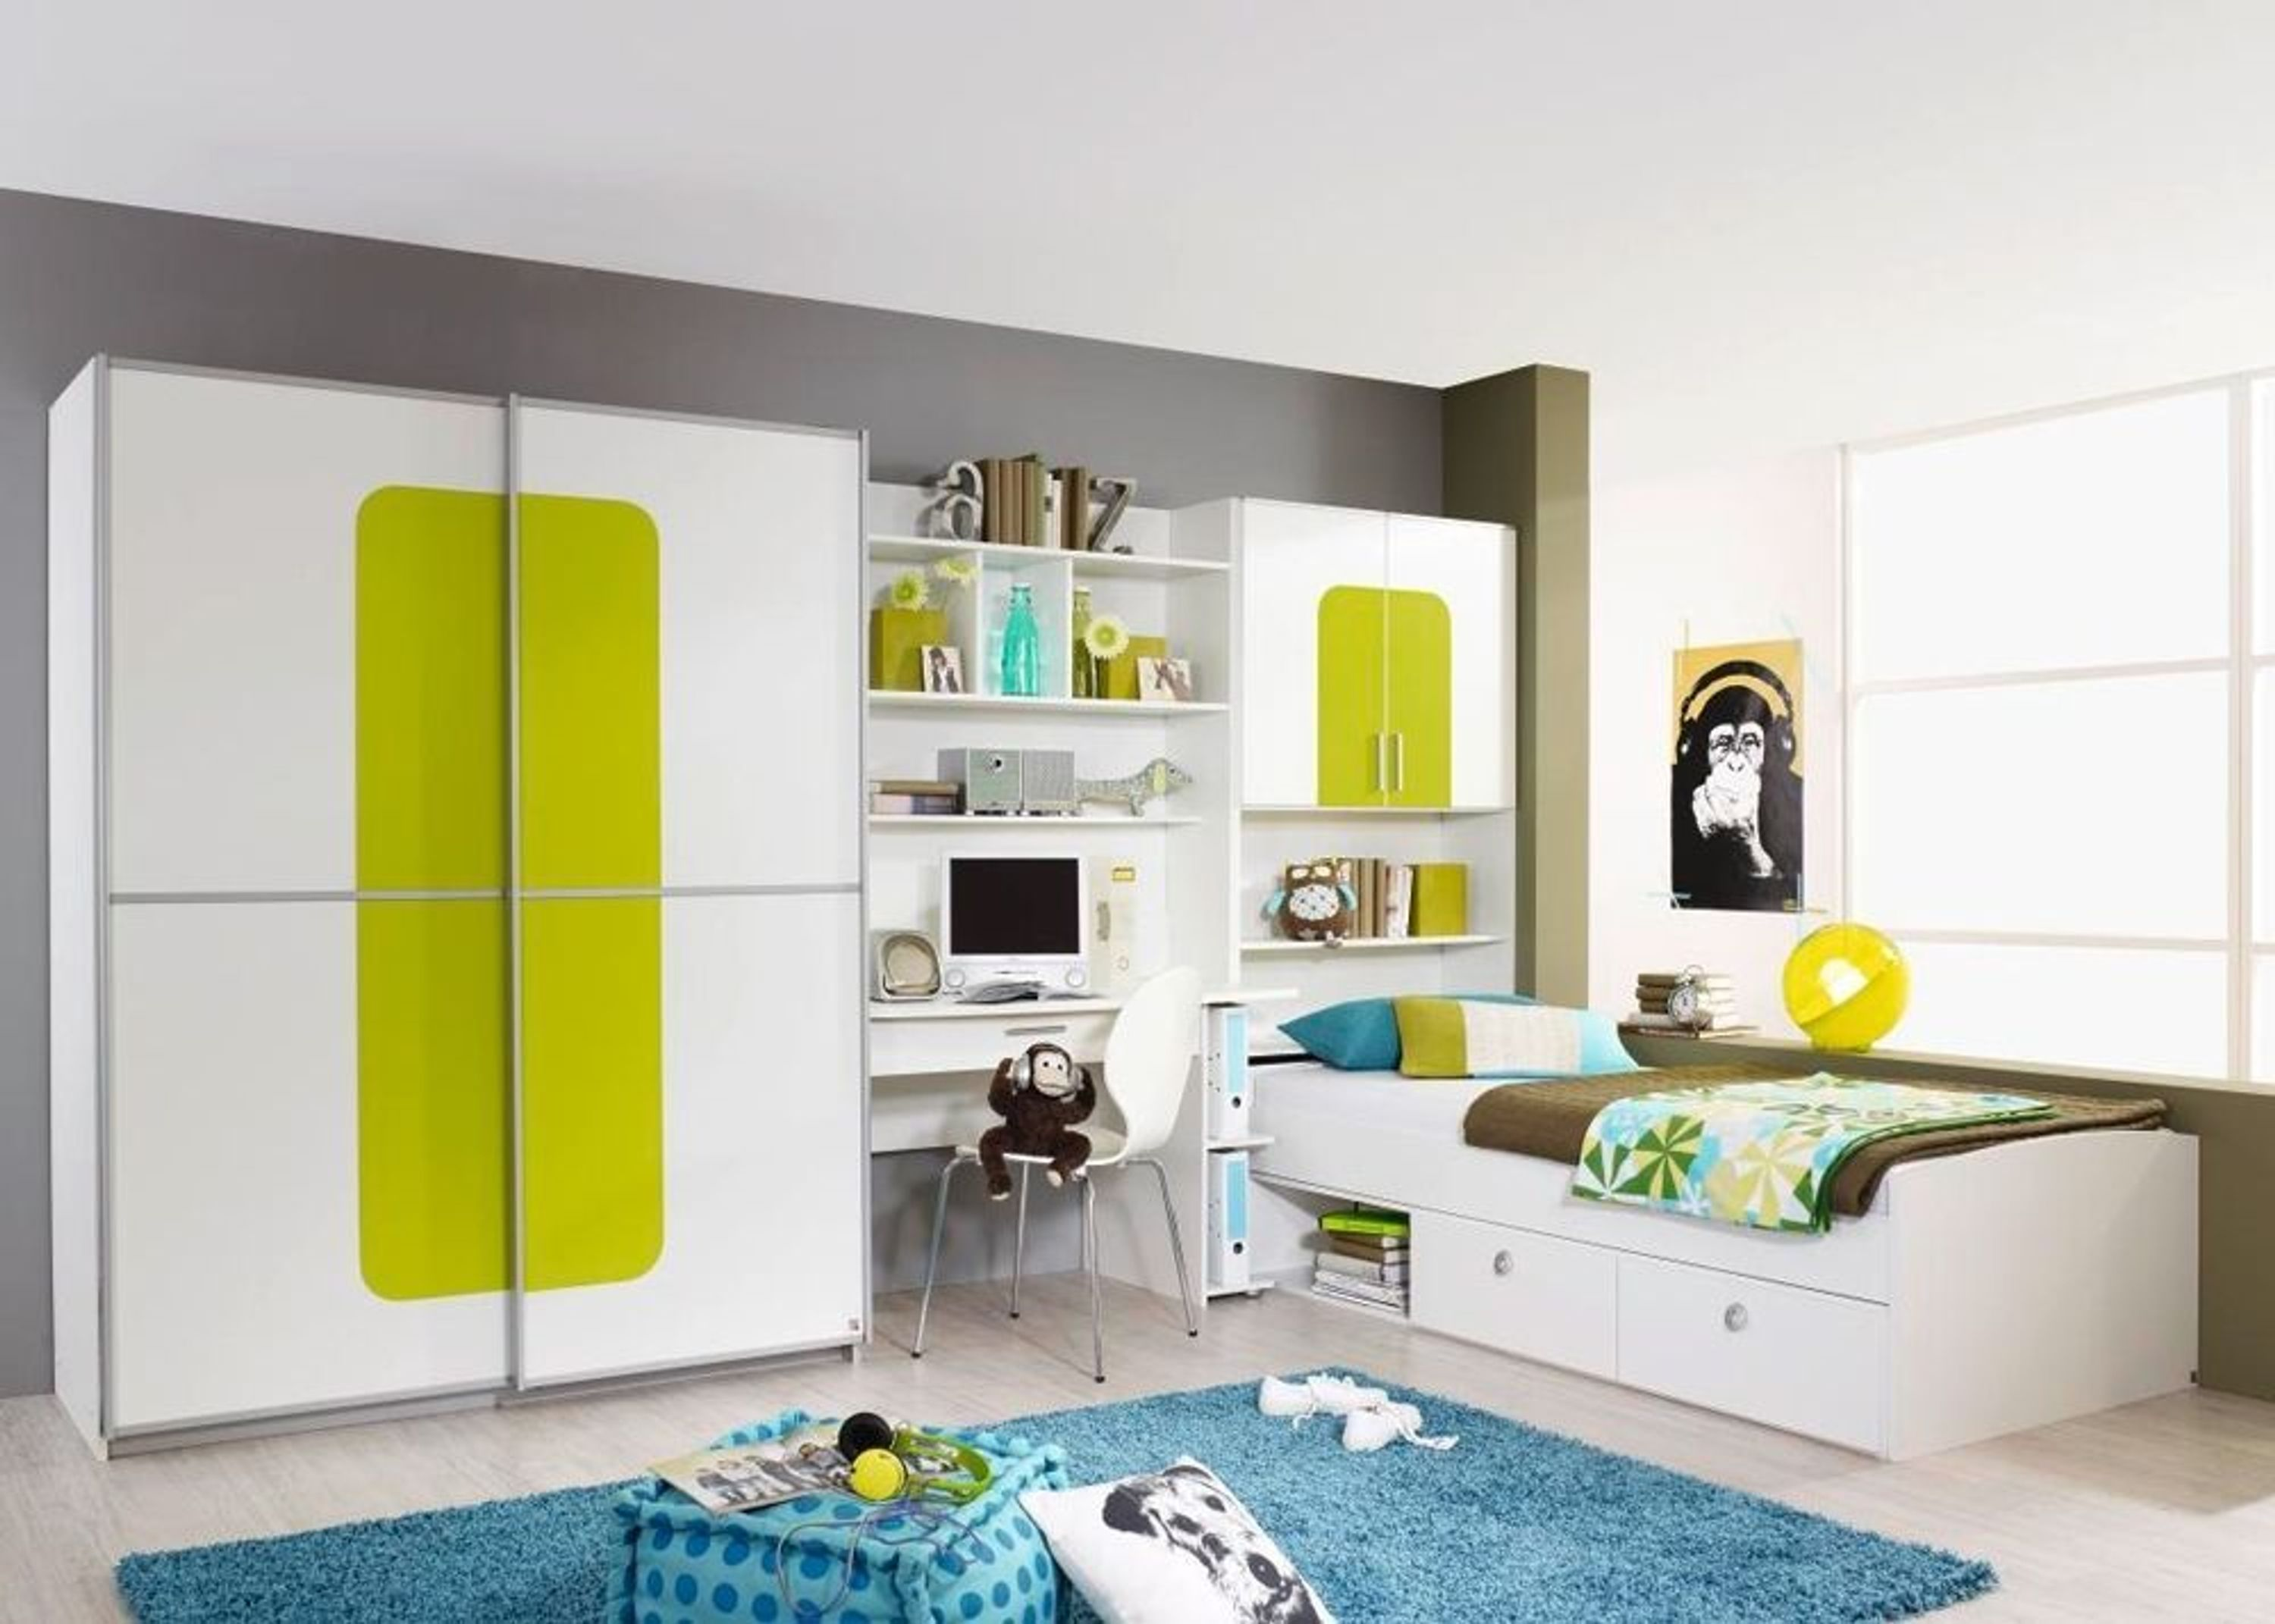 jugendzimmer komplett utah kinderzimmer 5 teilig wei gr n. Black Bedroom Furniture Sets. Home Design Ideas